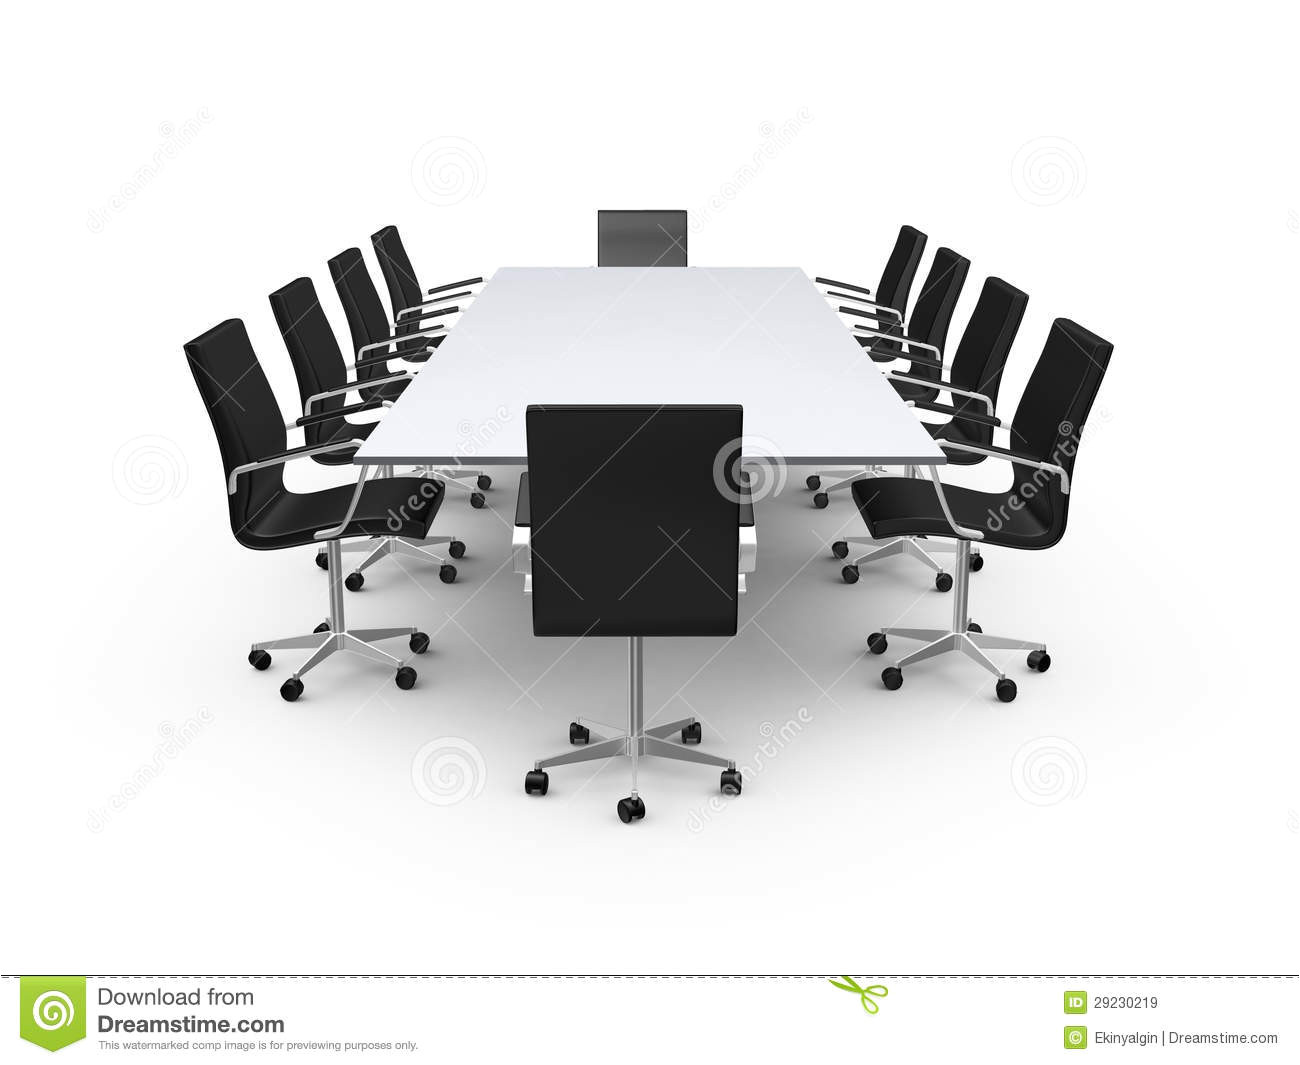 used office furniture stores near me target chairs commercial overhead cabinets table chair grand ave knoxville